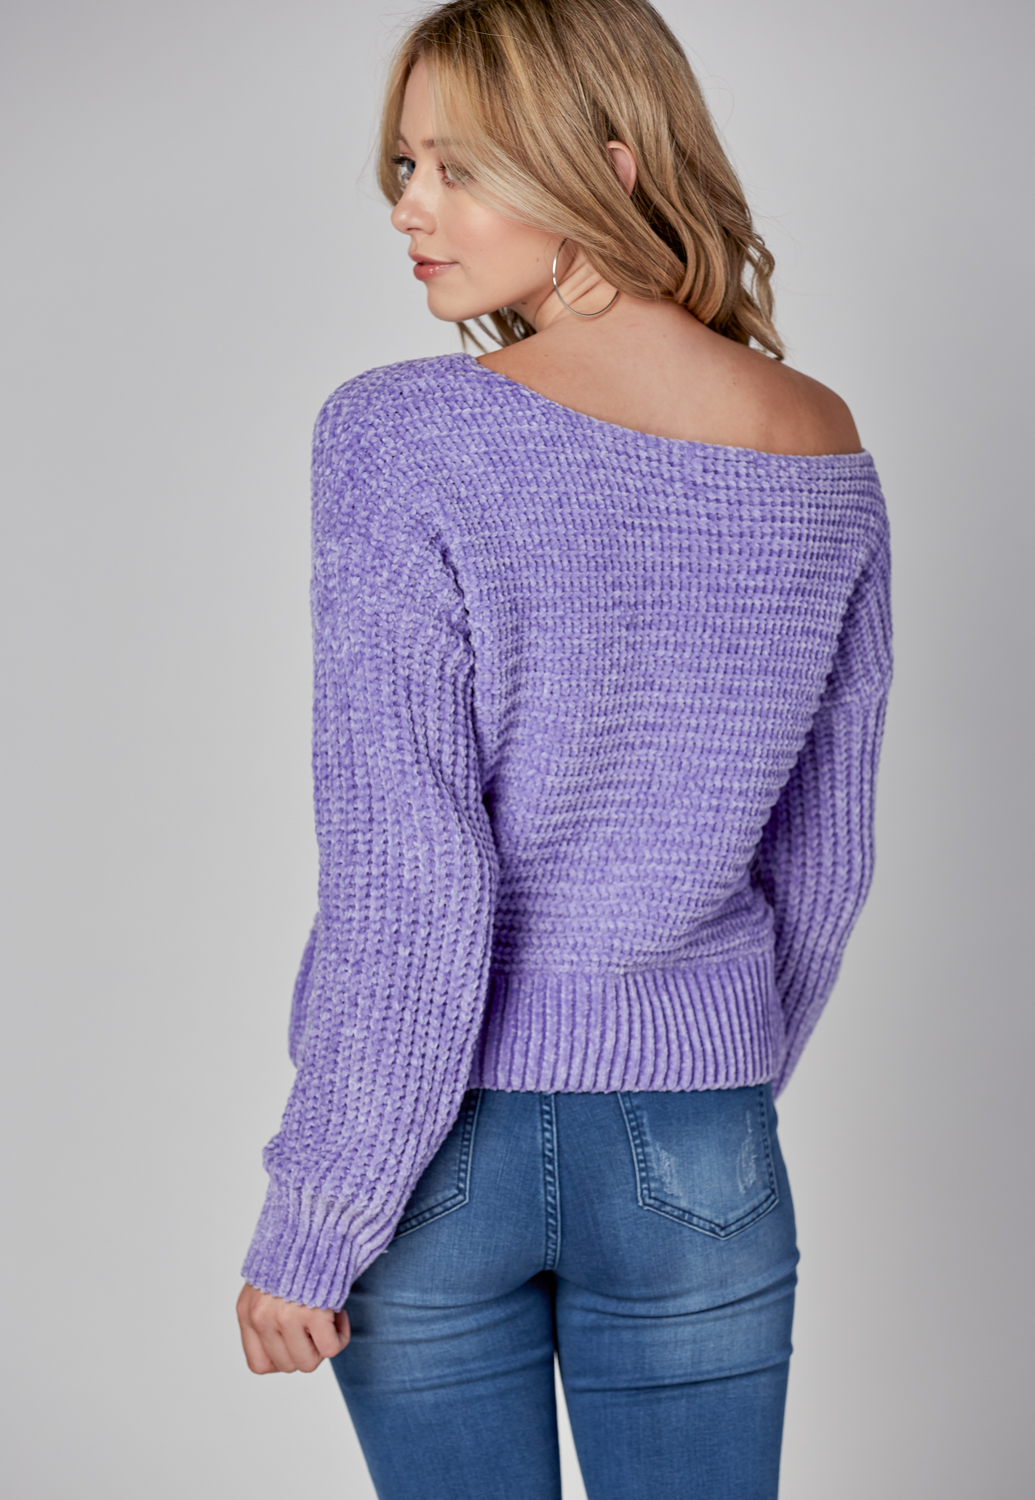 Velvet Yarn Sweater